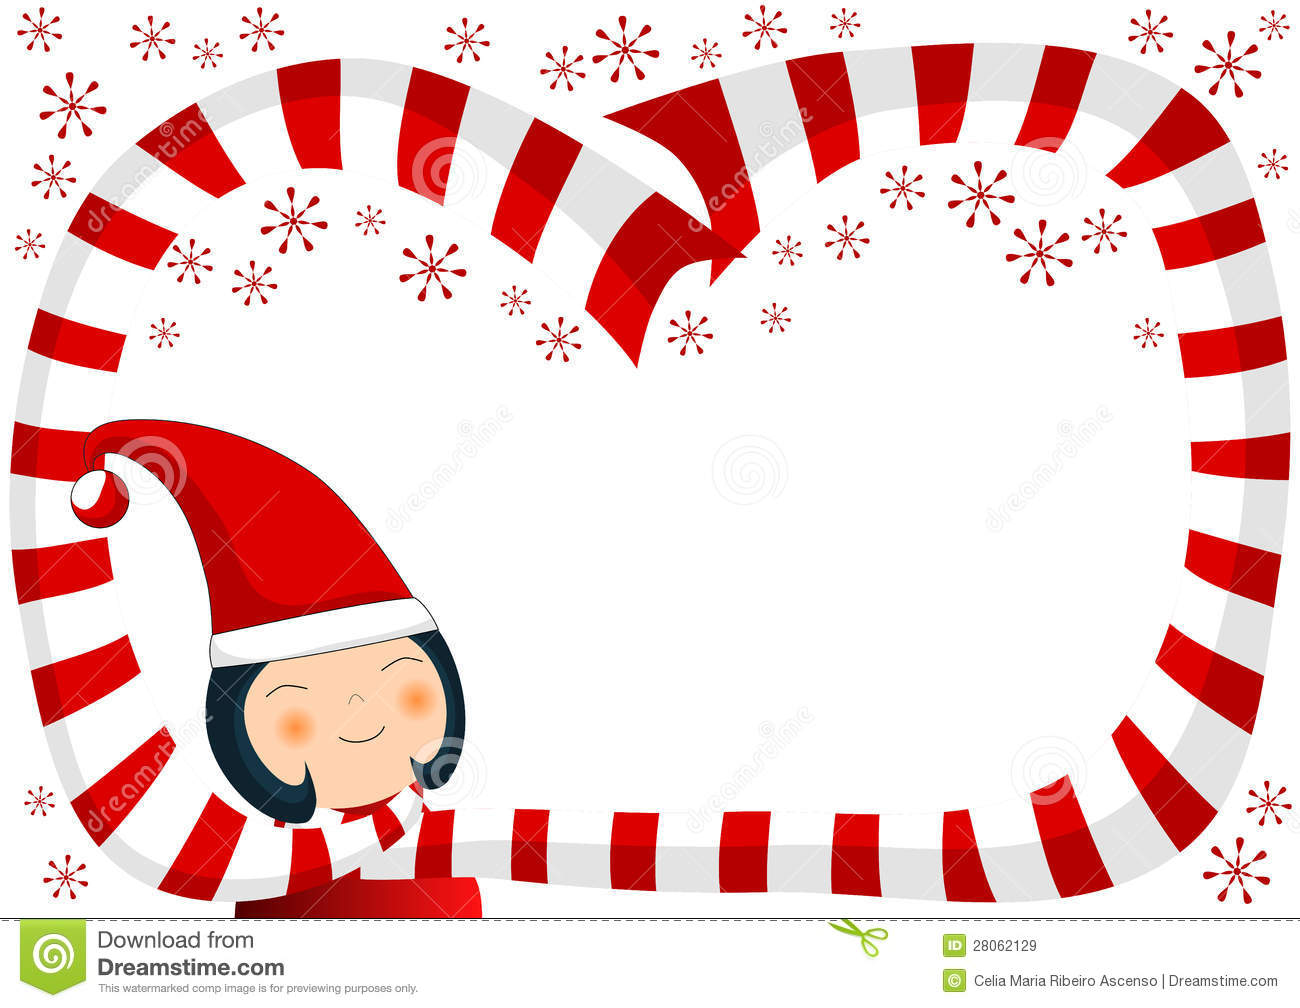 Royalty Free Stock Images: Girl with Scarf and Snowflakes Christmas ...